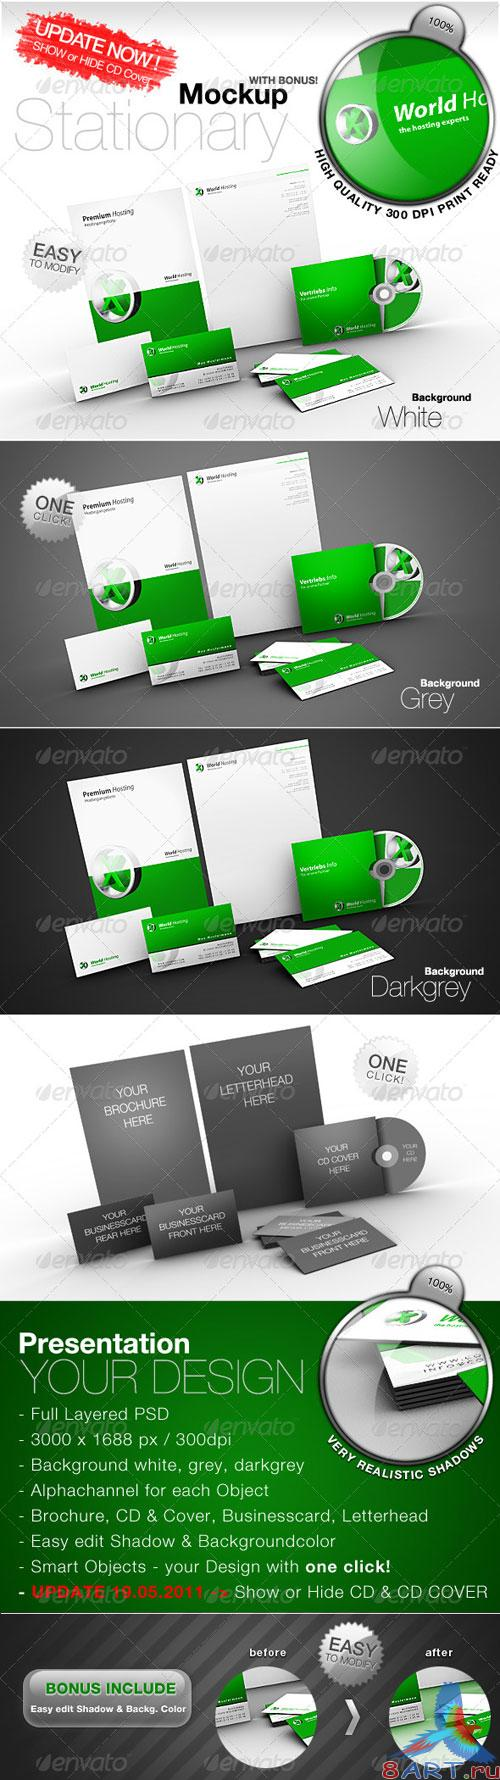 GraphicRiver - Stationary Mockup